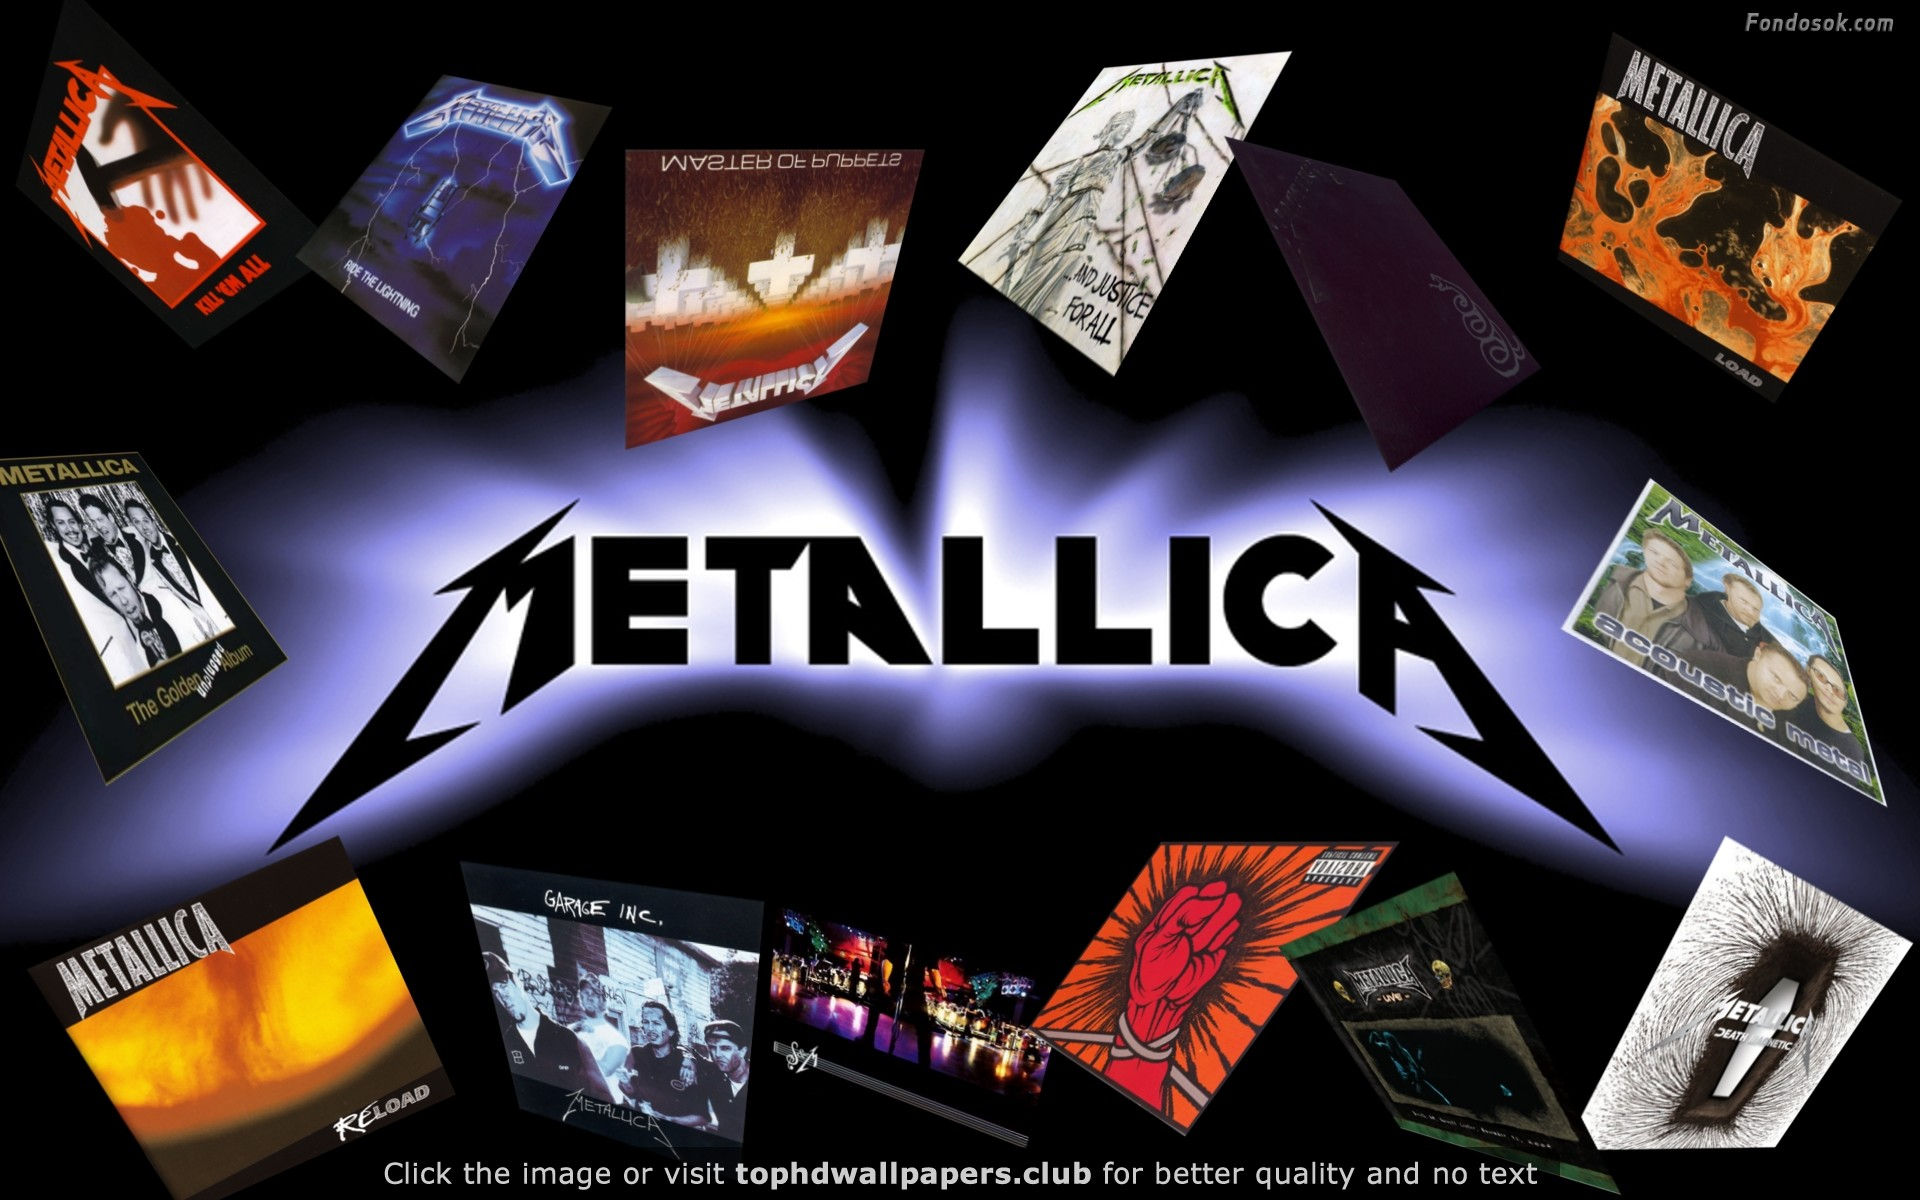 Metallica Albums HD wallpaper for your PC, Mac or Mobile device